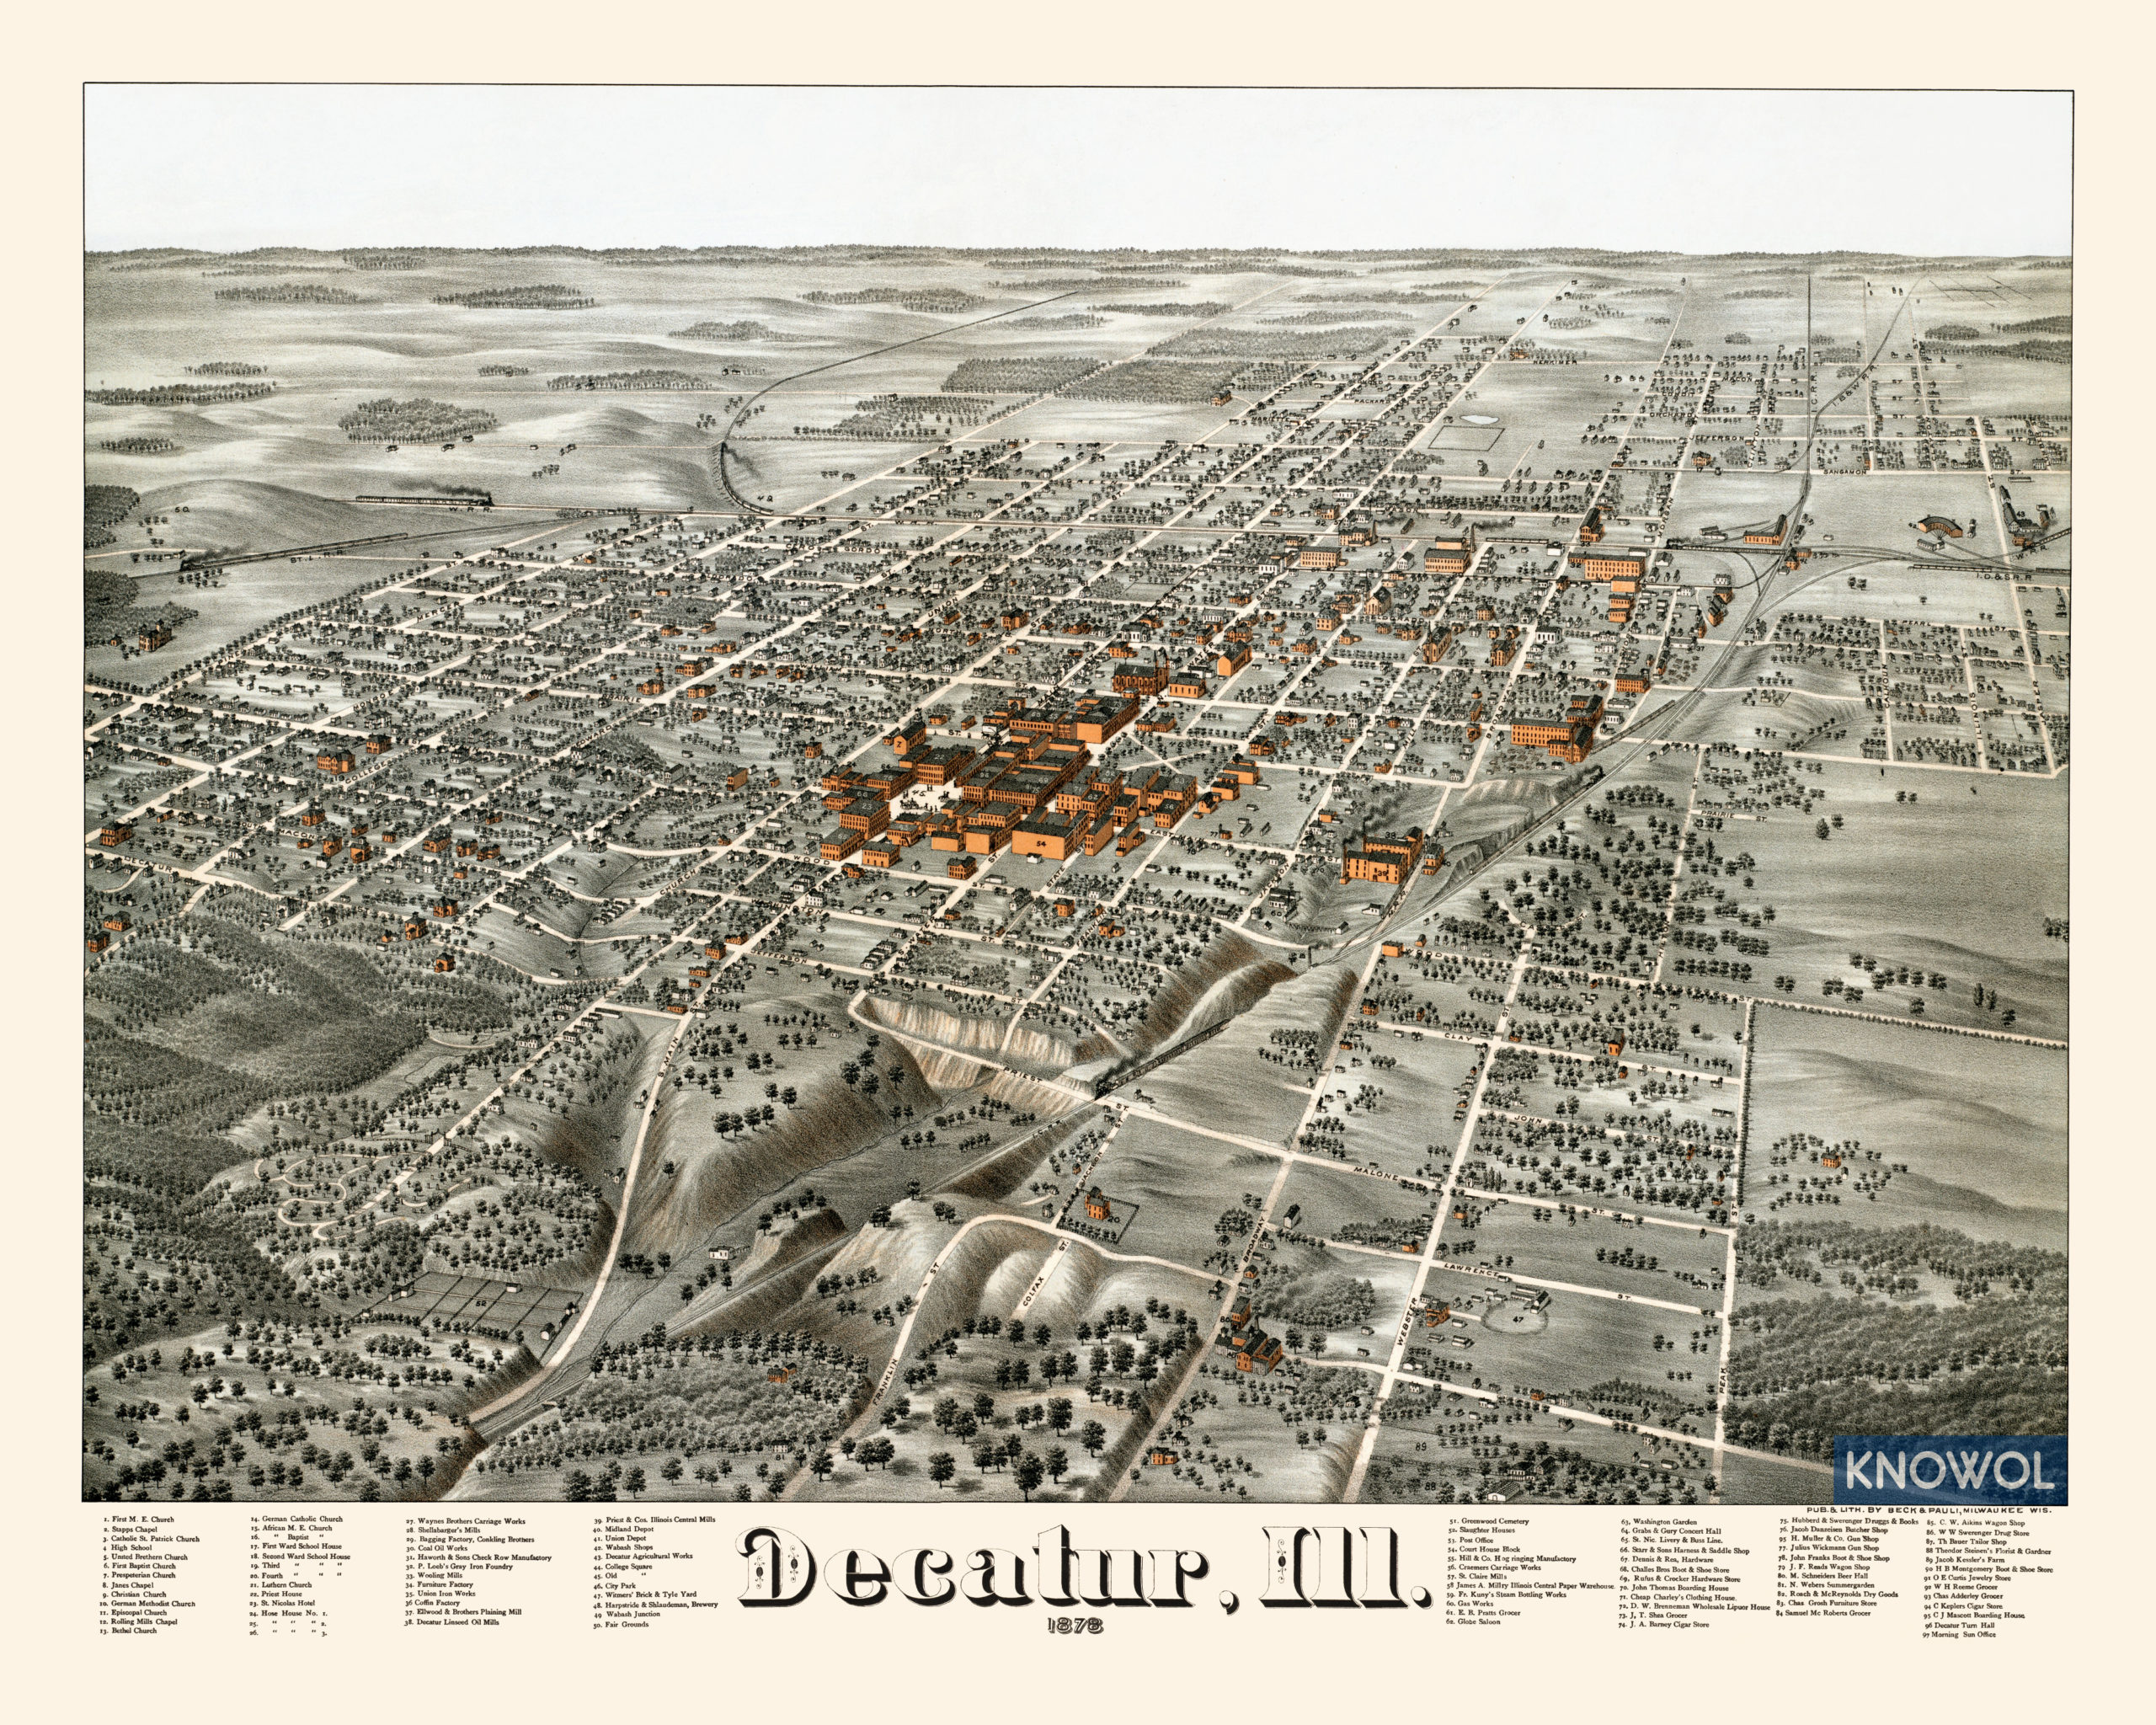 Decatur Illinois Map.Historic Map Shows Bird S Eye View Of Decatur Illinois In 1878